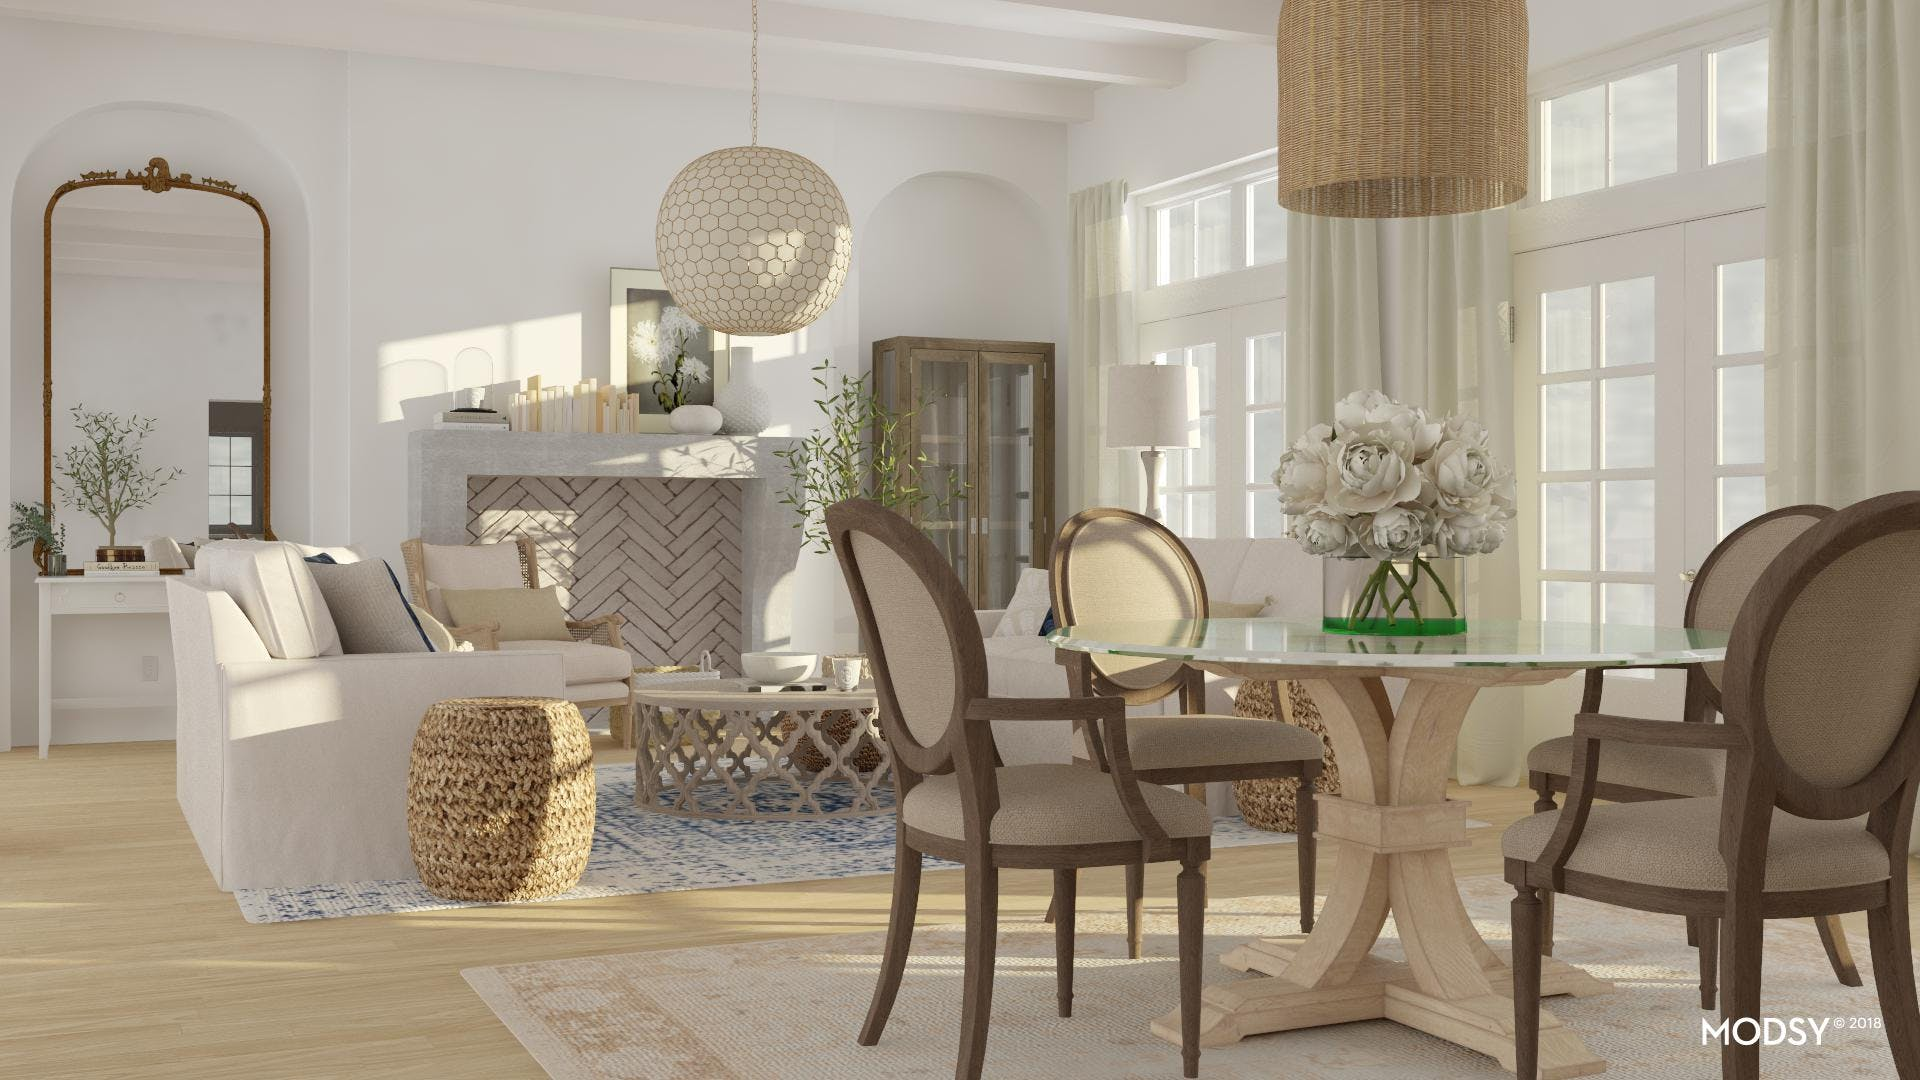 Open Dining Space With Rustic Elegance